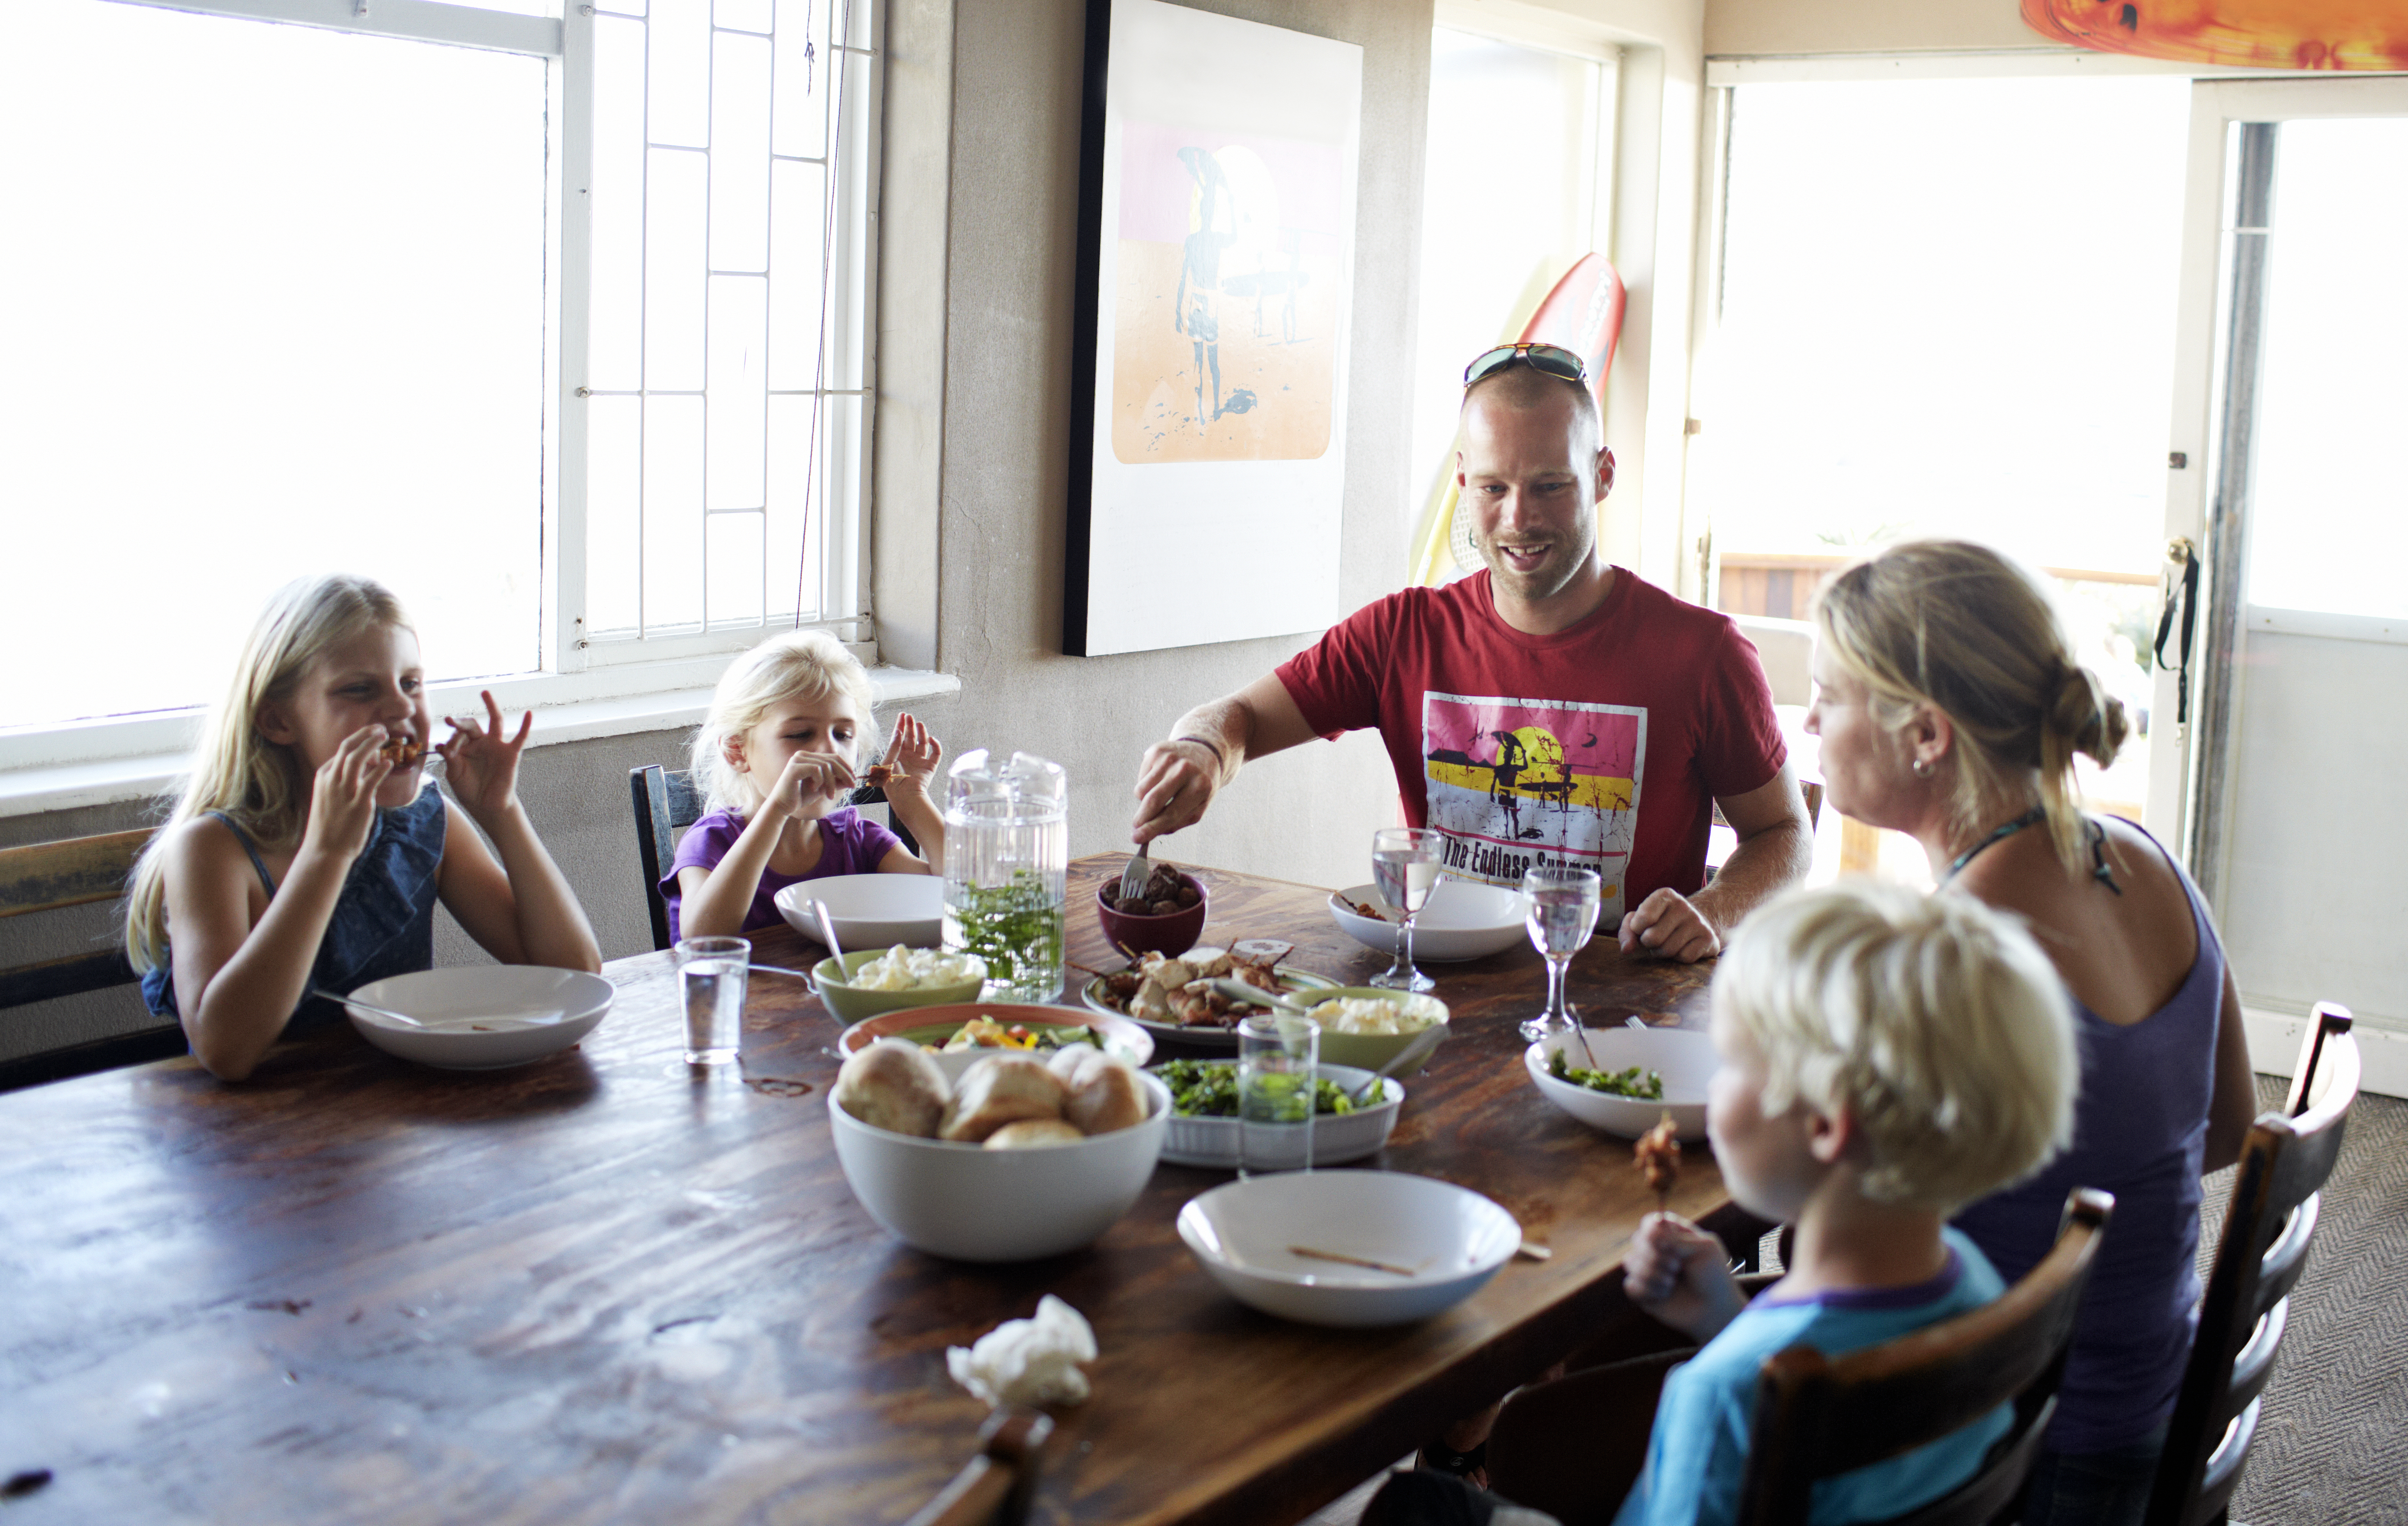 Happy family dinner images like this may be doing more harm than good for working families